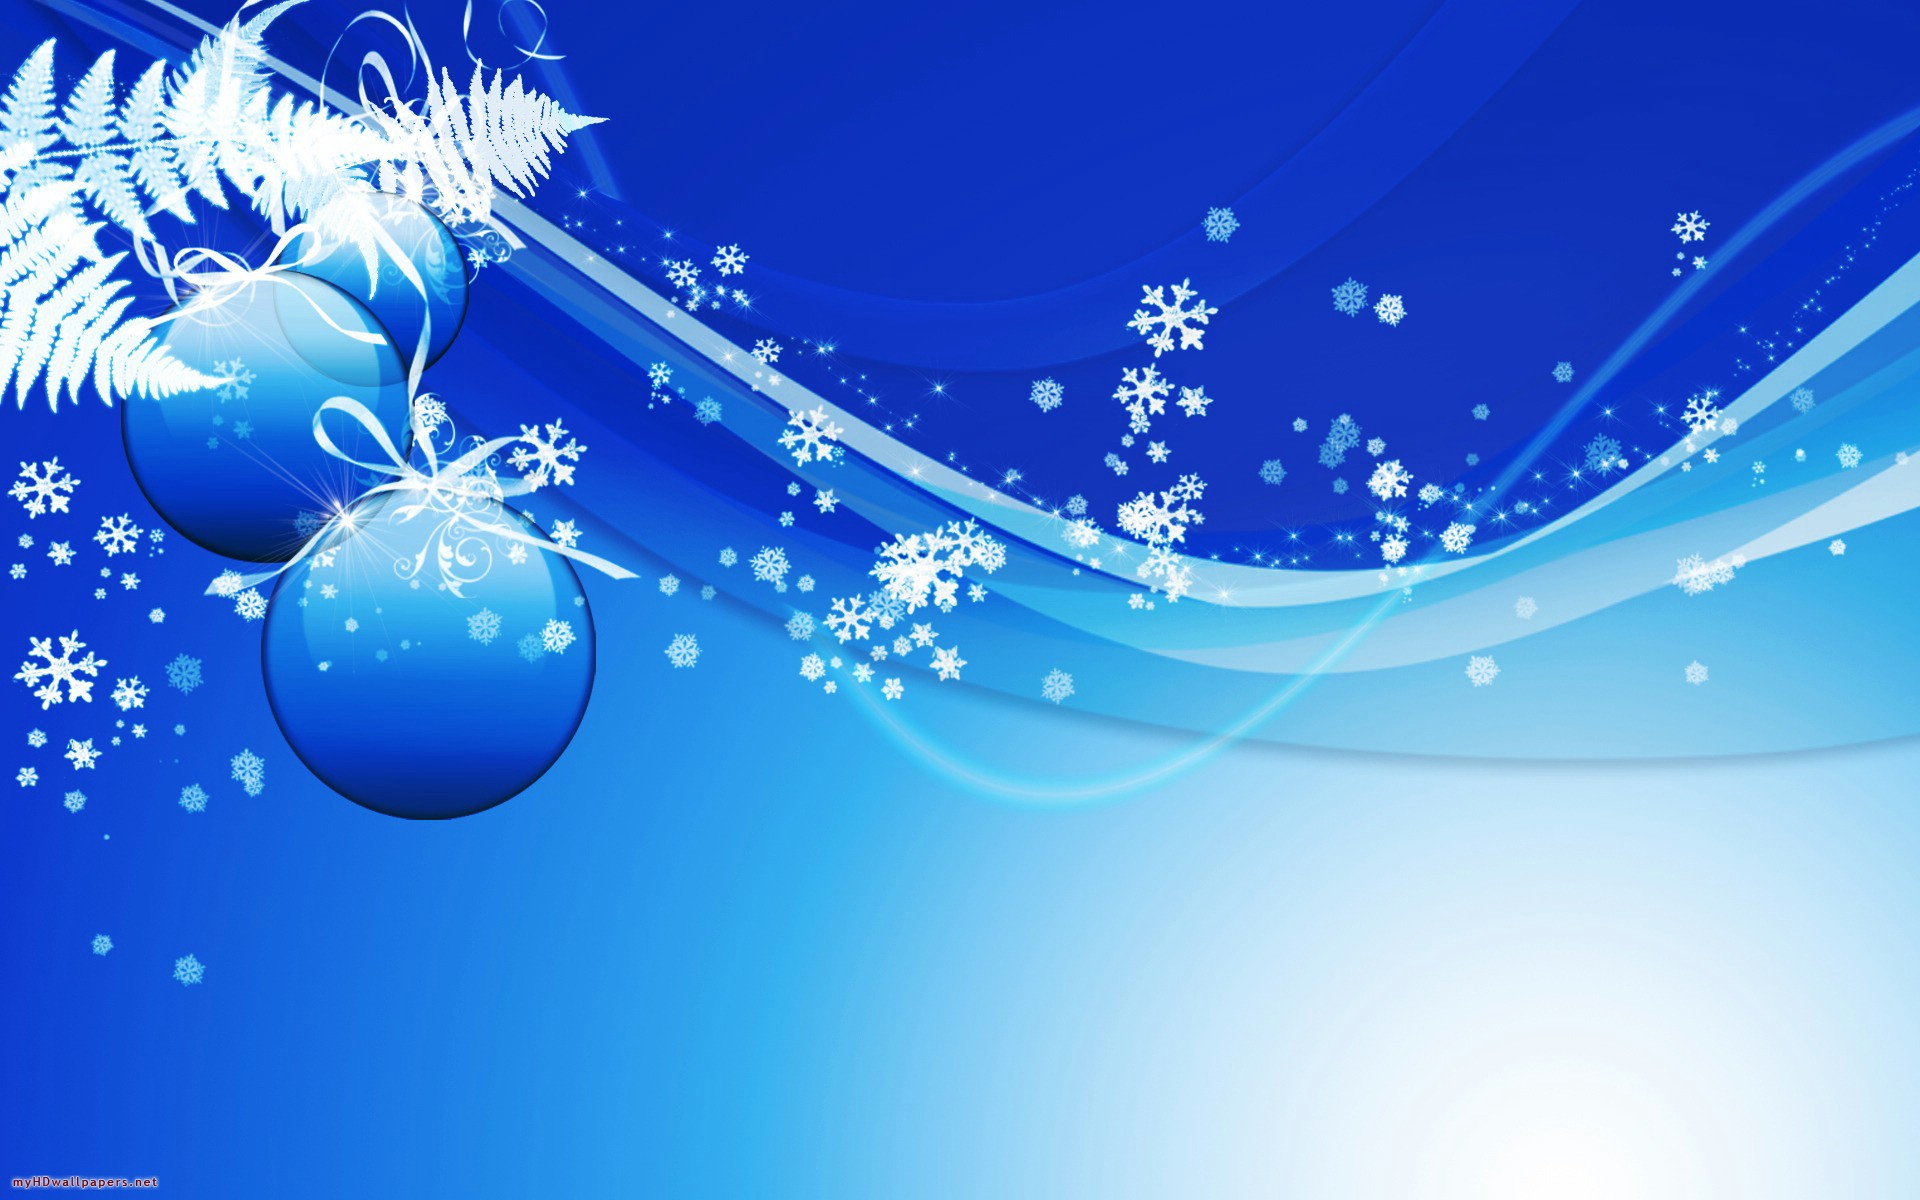 Christmas-wallpaper-wp5603871